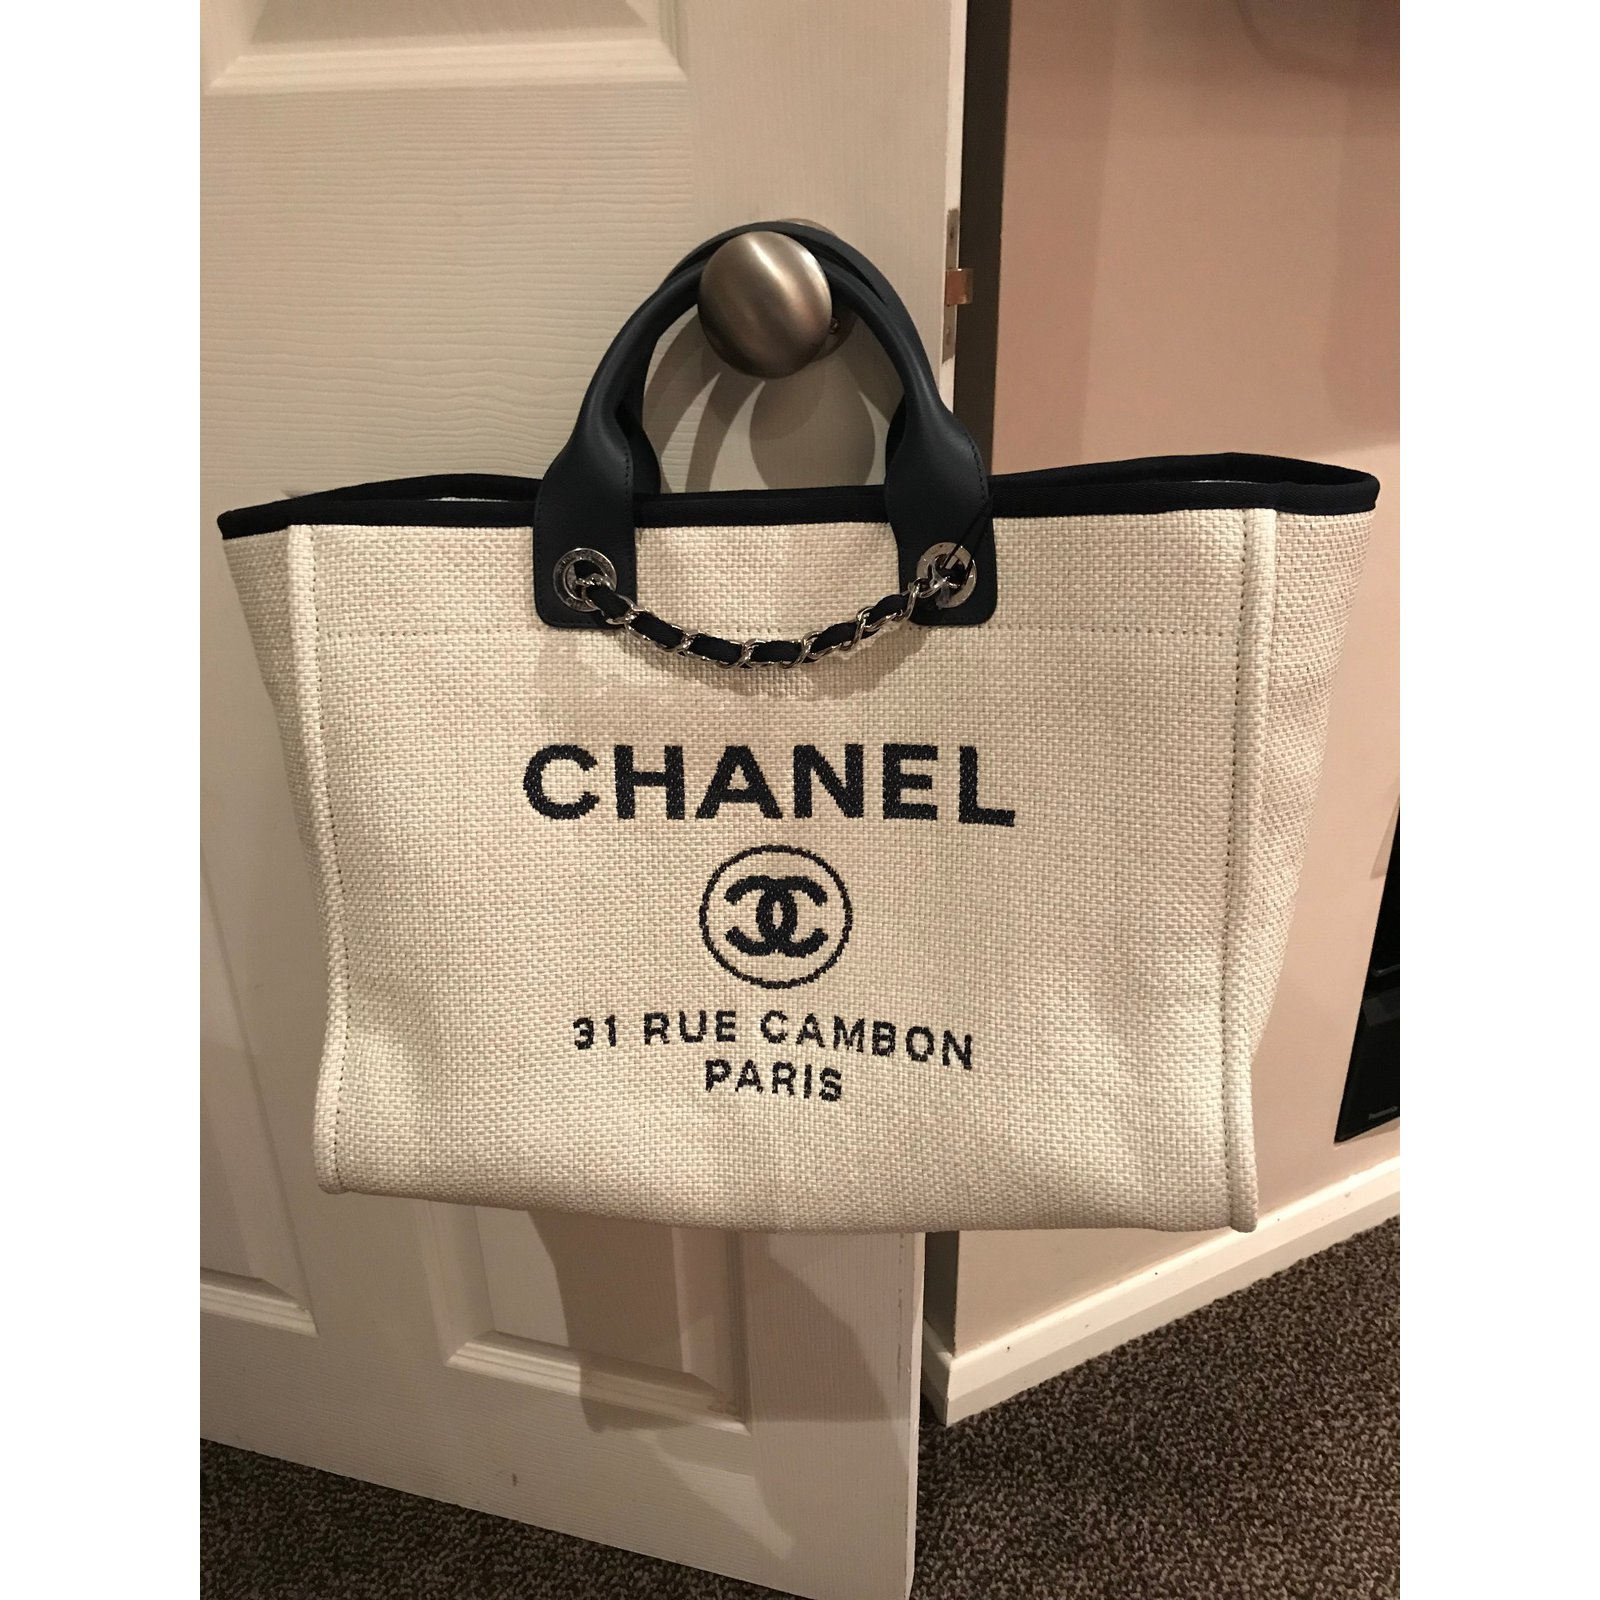 bdfeff8026af Chanel Deauville Tote Colors | Stanford Center for Opportunity ...